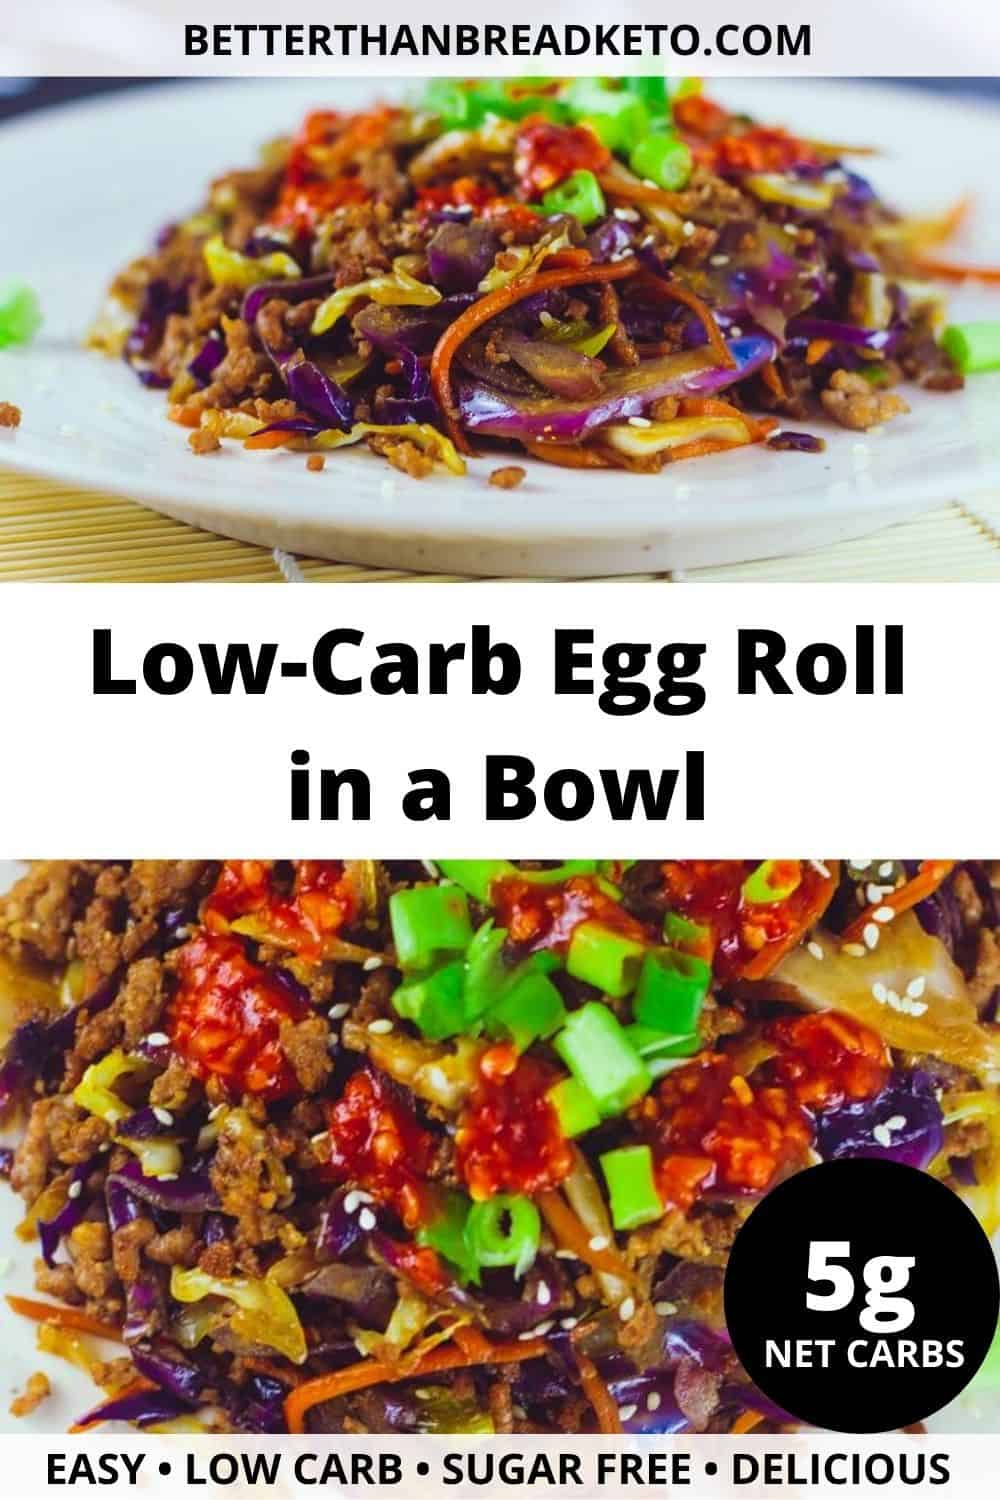 Low-Carb Egg Roll in a Bowl